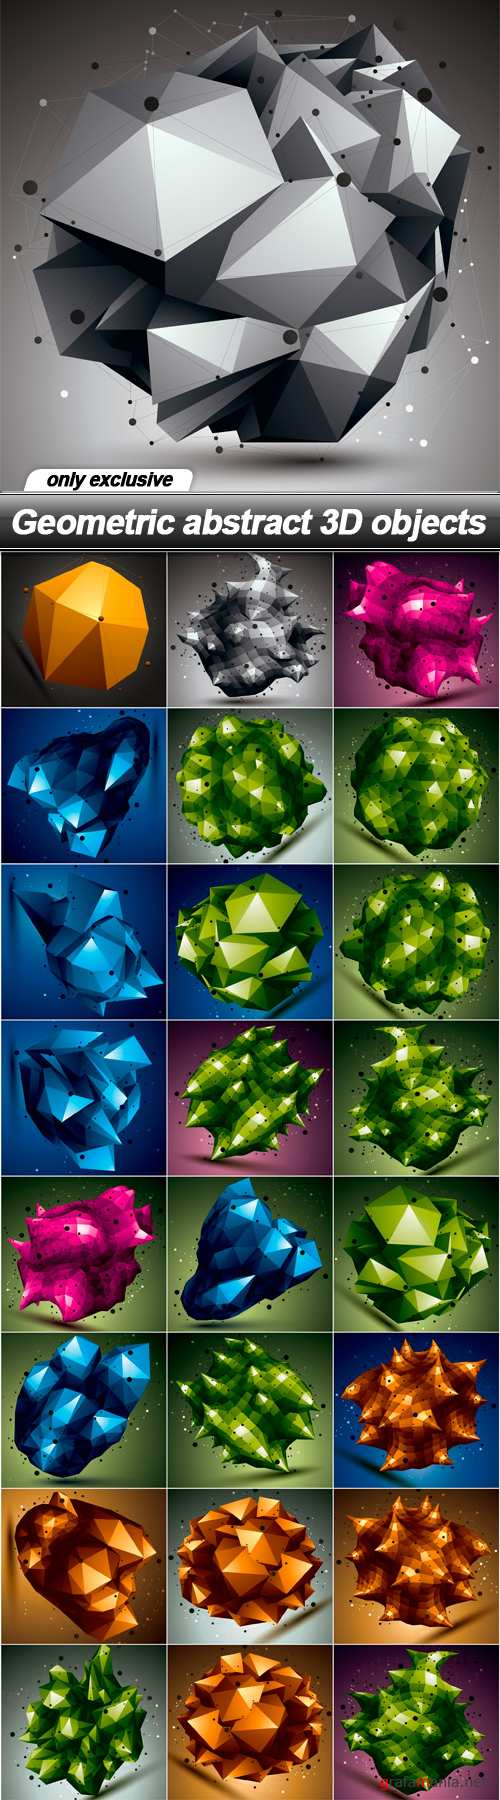 Geometric abstract 3D objects